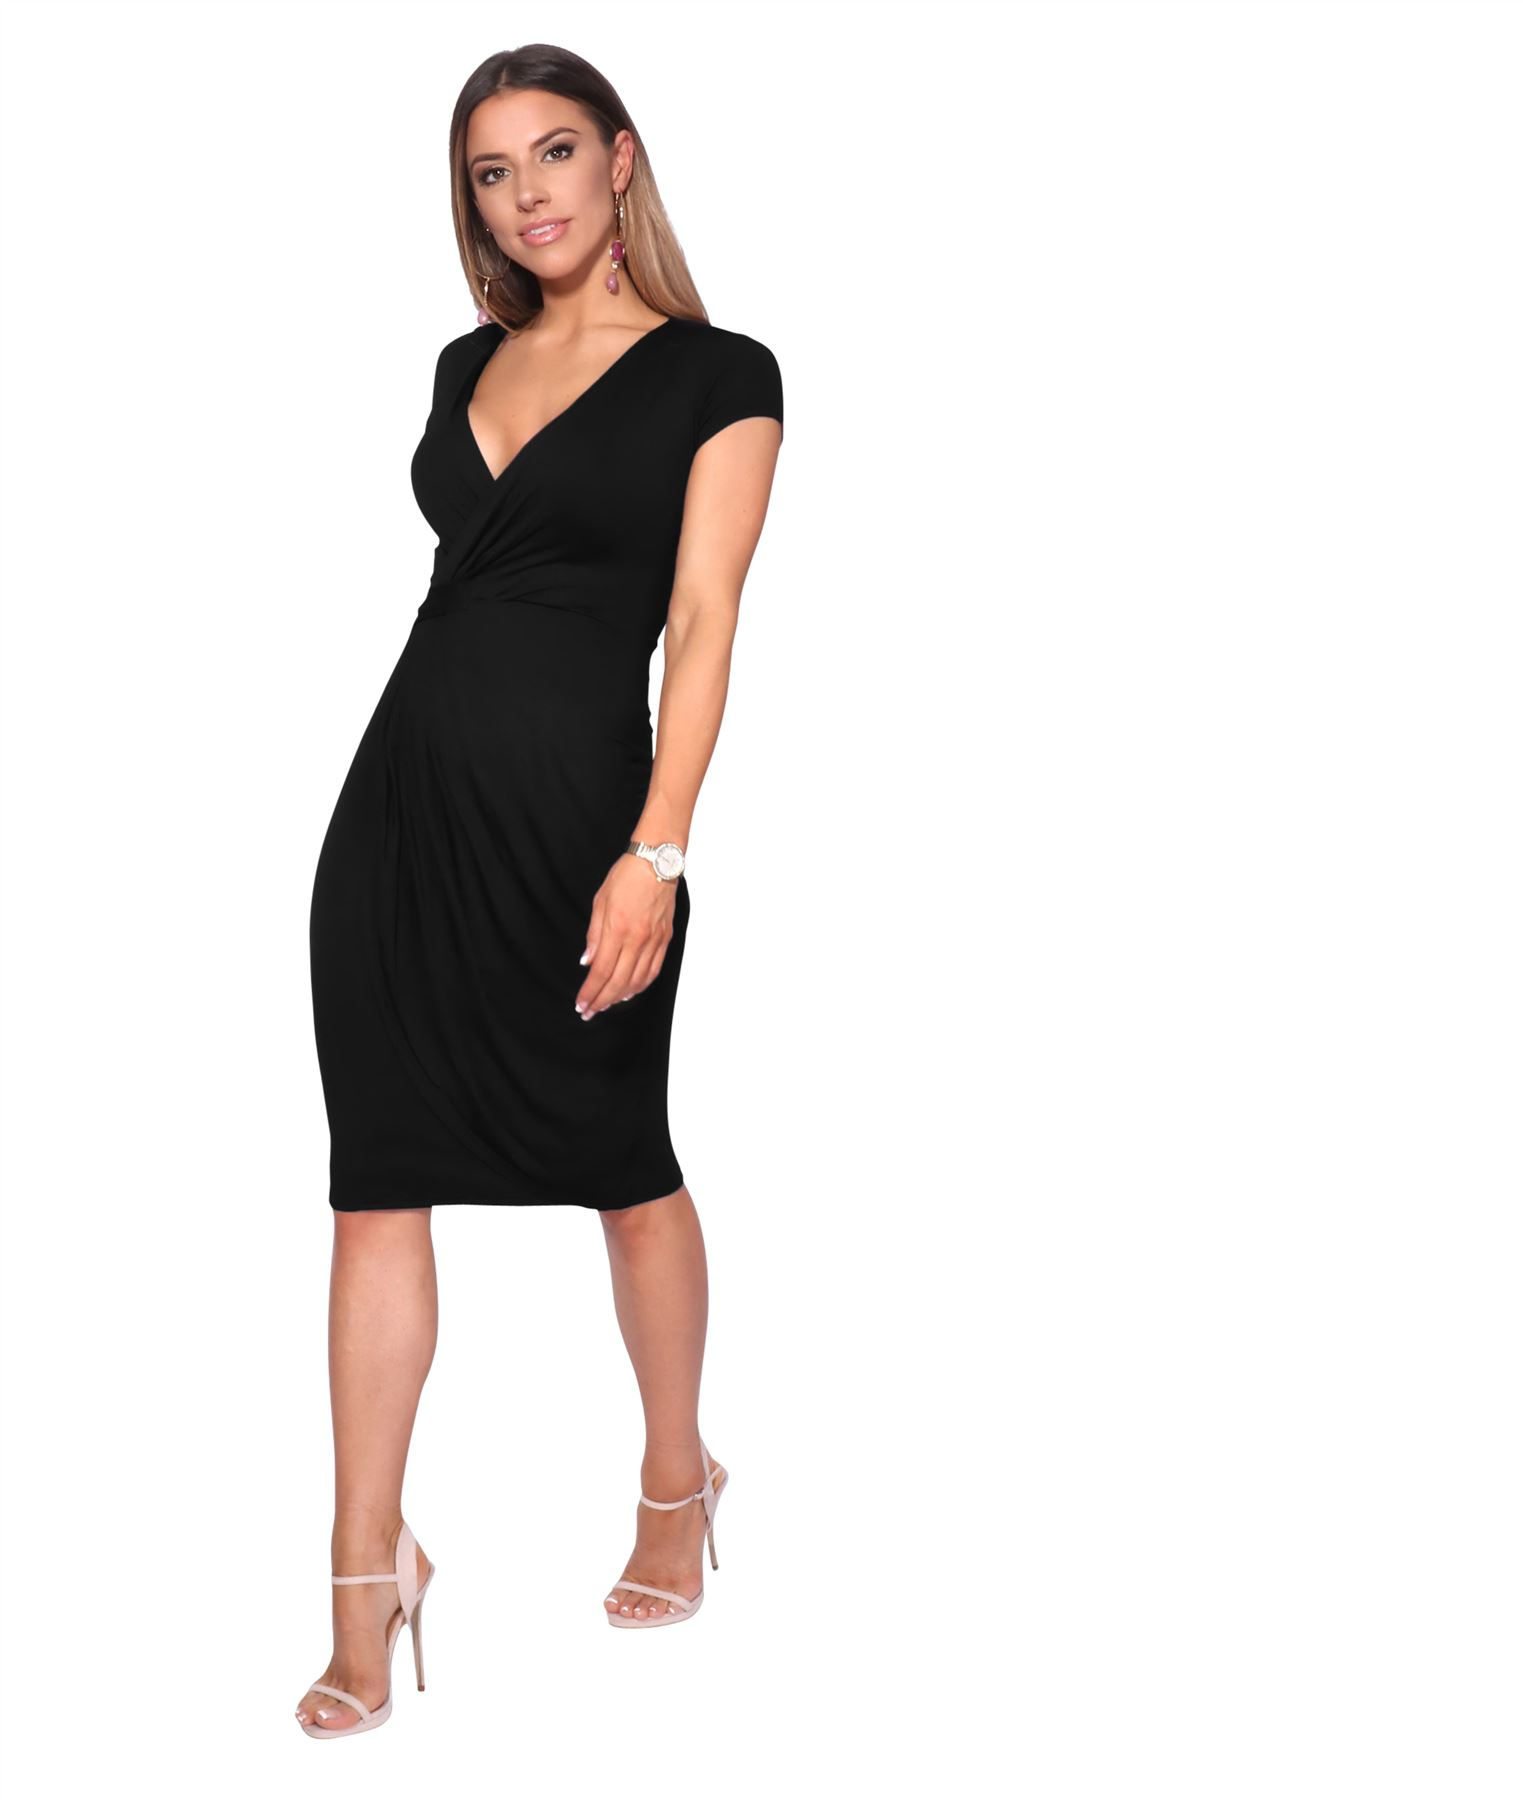 Womens-Ladies-V-Neck-Wrap-Midi-Dress-Front-Pleated-Skirt-Top-Cap-Sleeve-Party thumbnail 3